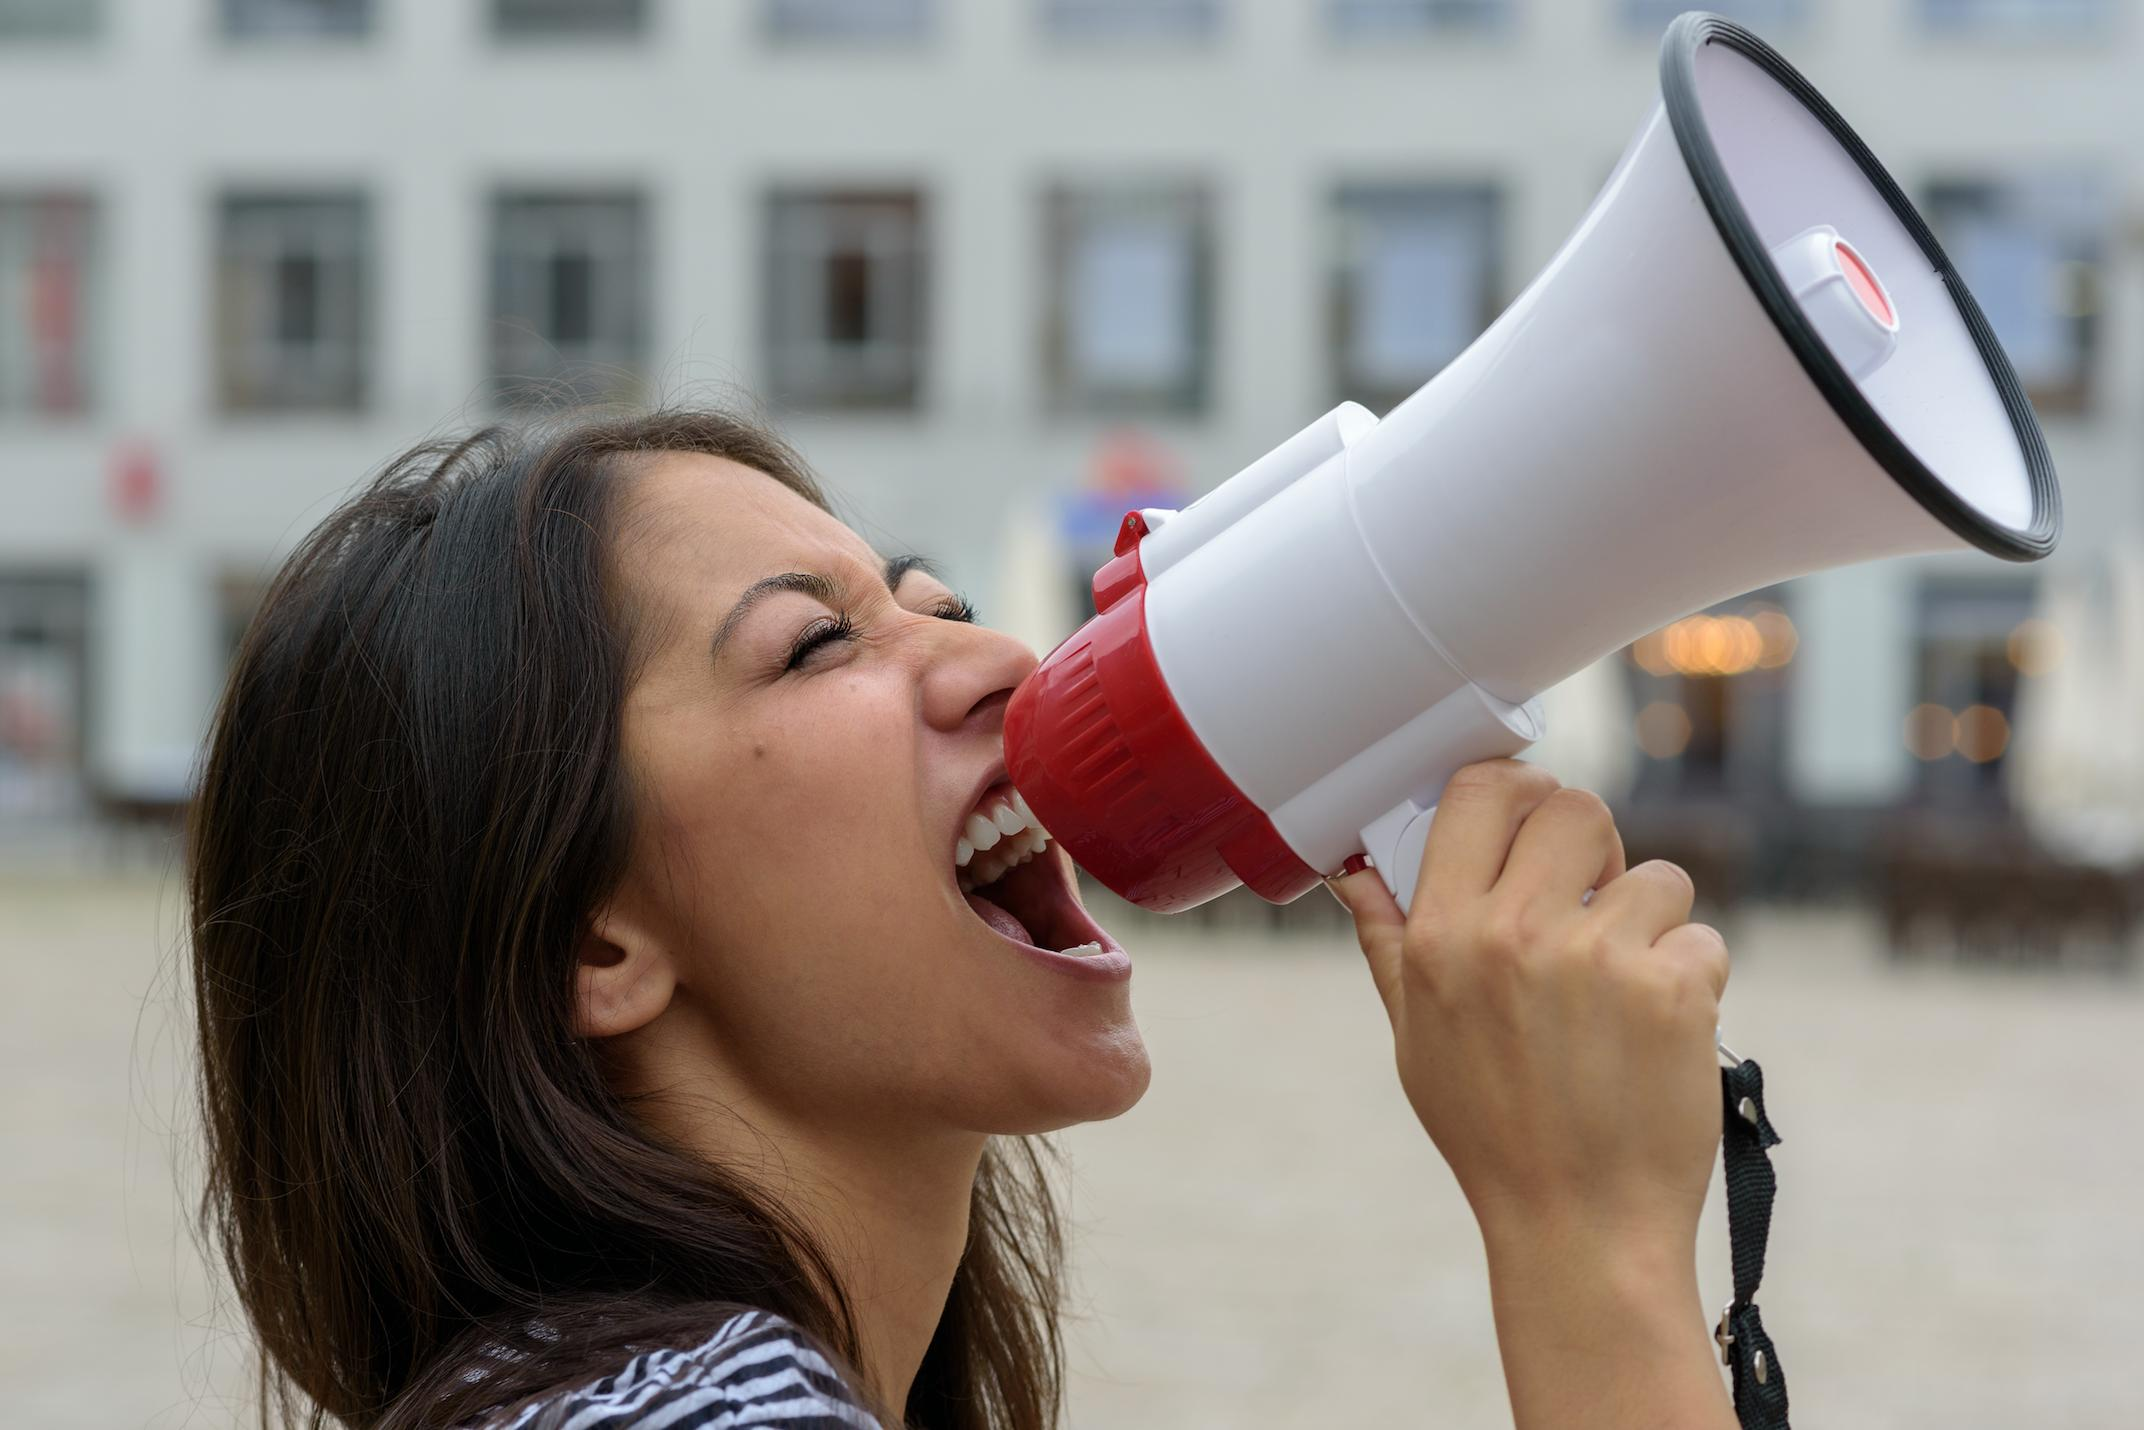 Woman shouts through megaphone